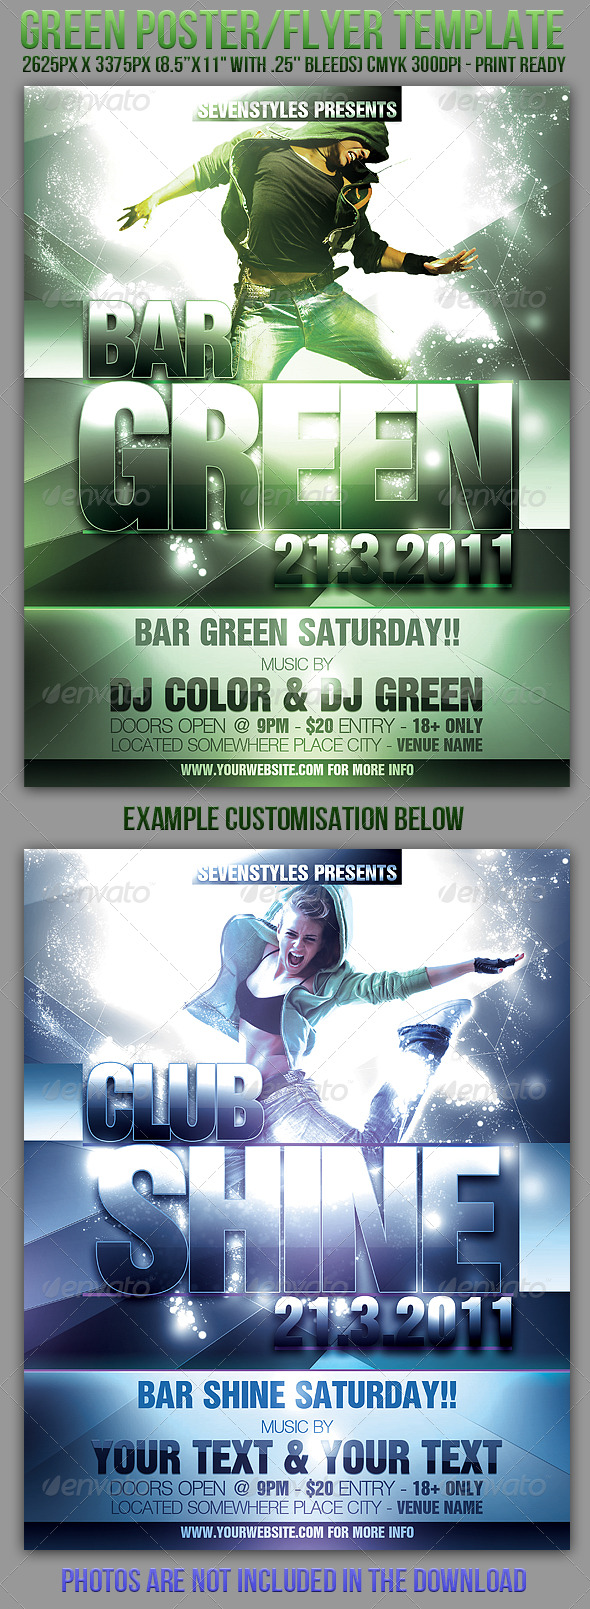 Green Poster/ Flyer Template - Clubs & Parties Events